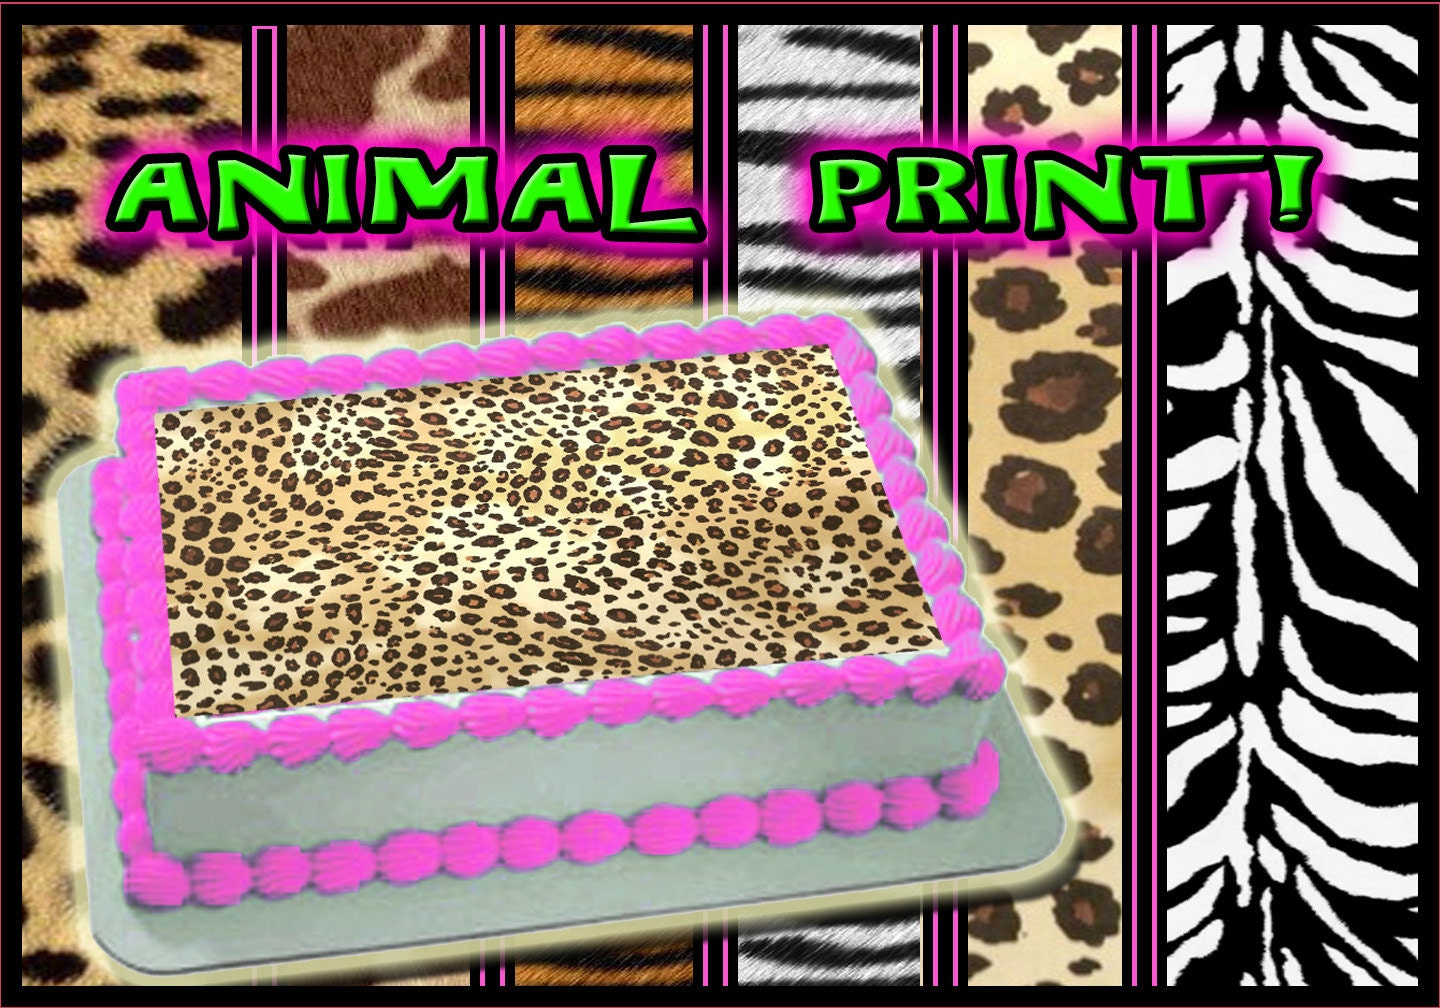 Animal print edible cake or cupcake toppers by pictures4cakes for Animal print edible cake decoration